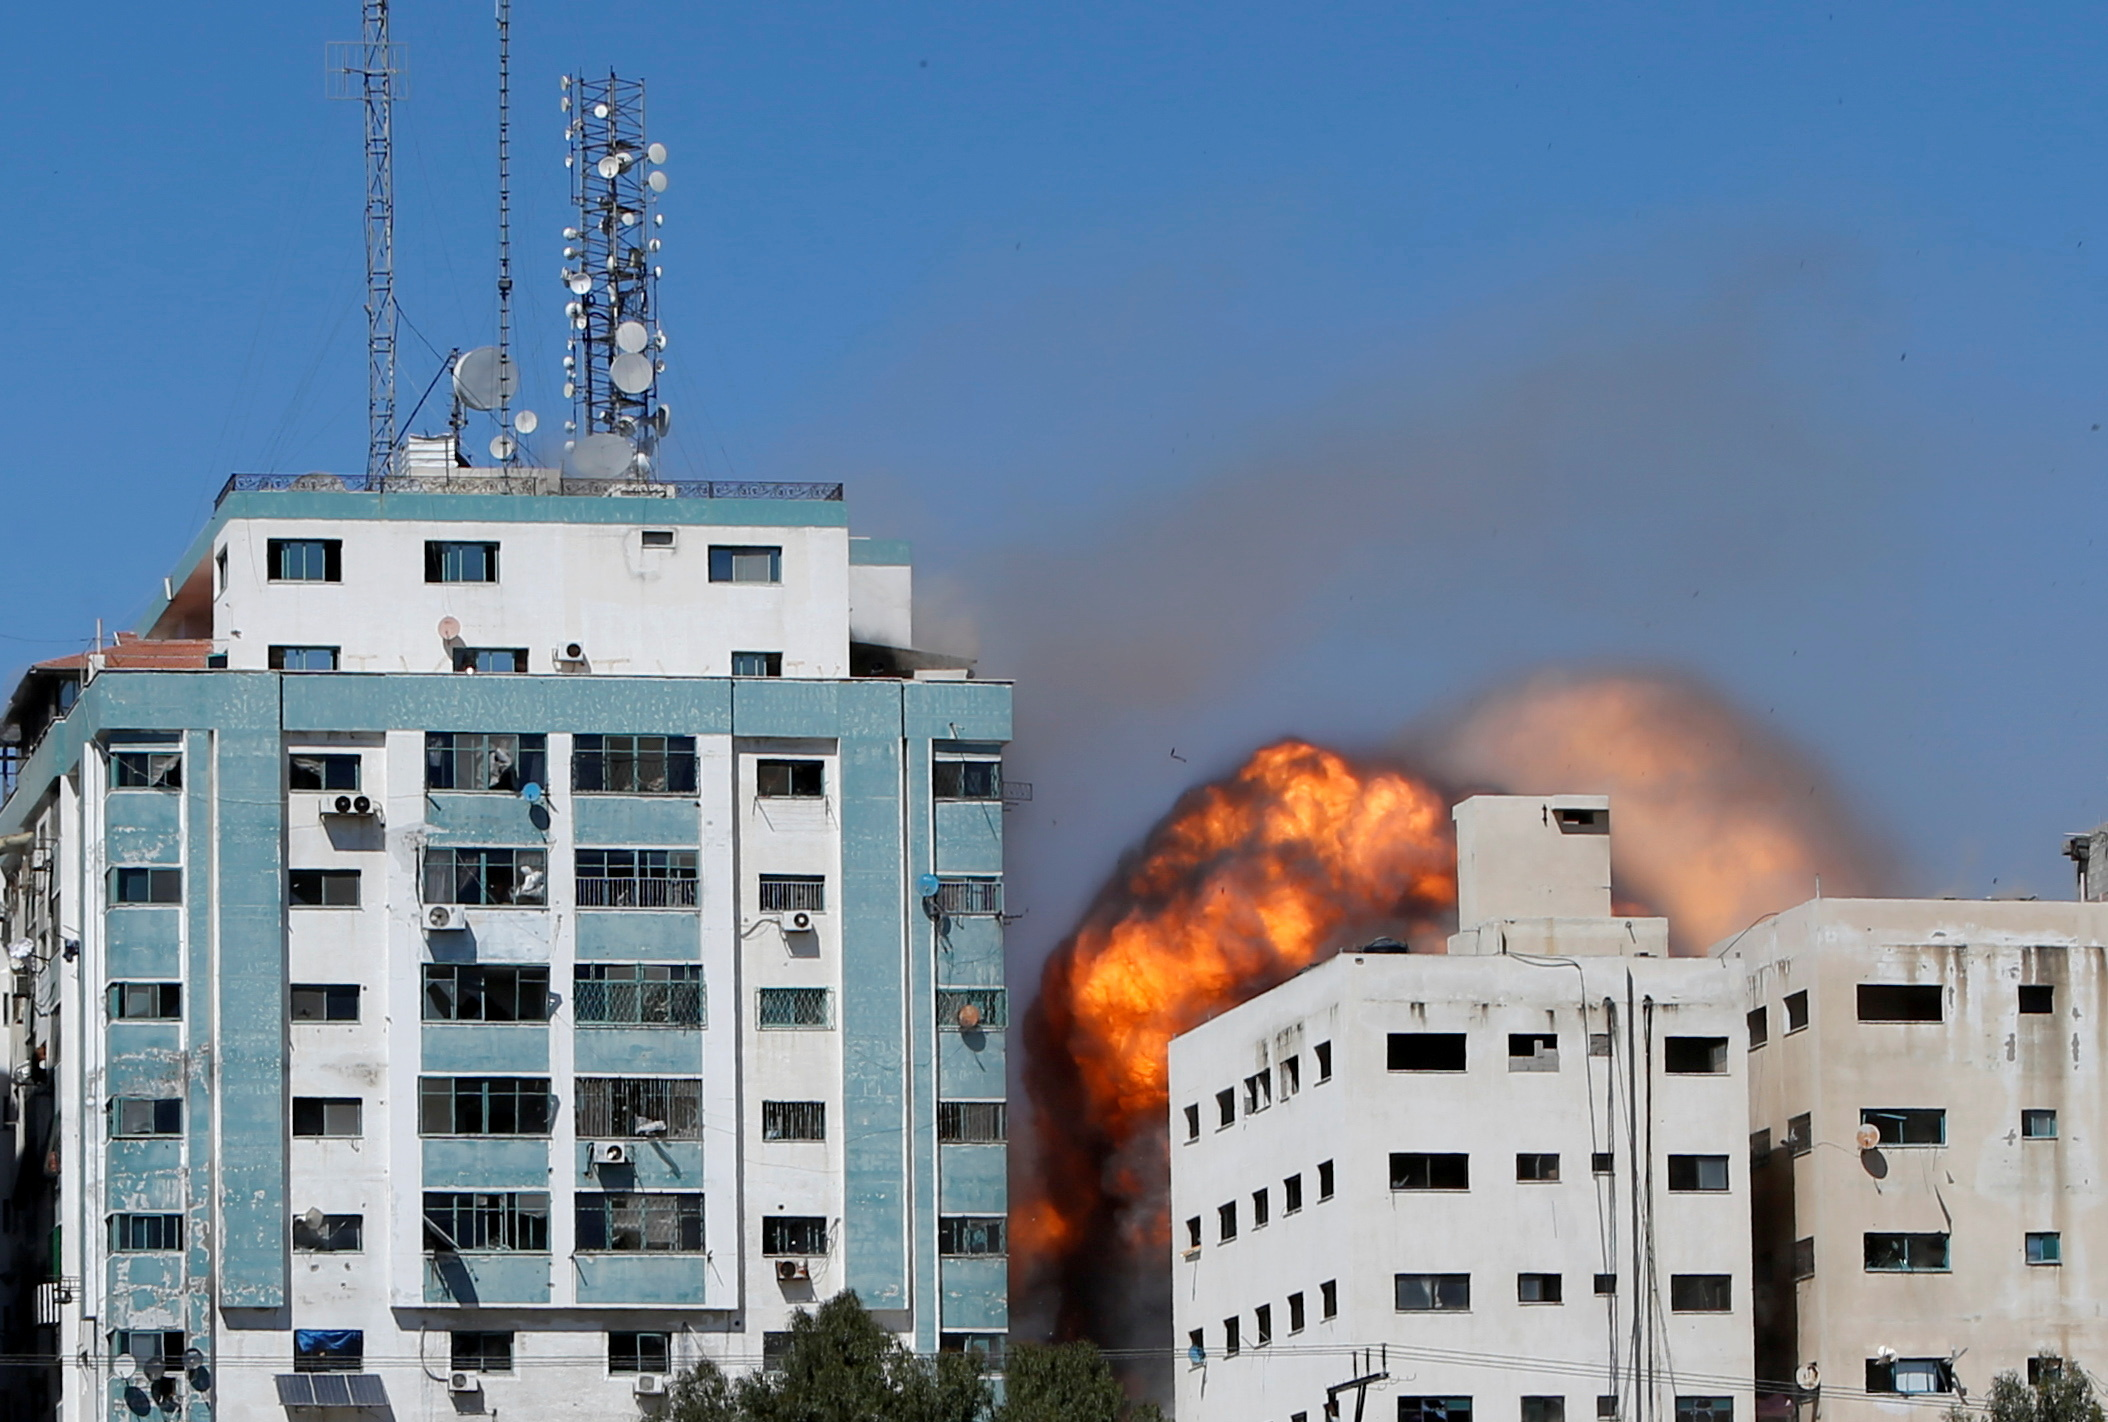 Israel-Gaza conflict continues amid airstrikes, rising death toll